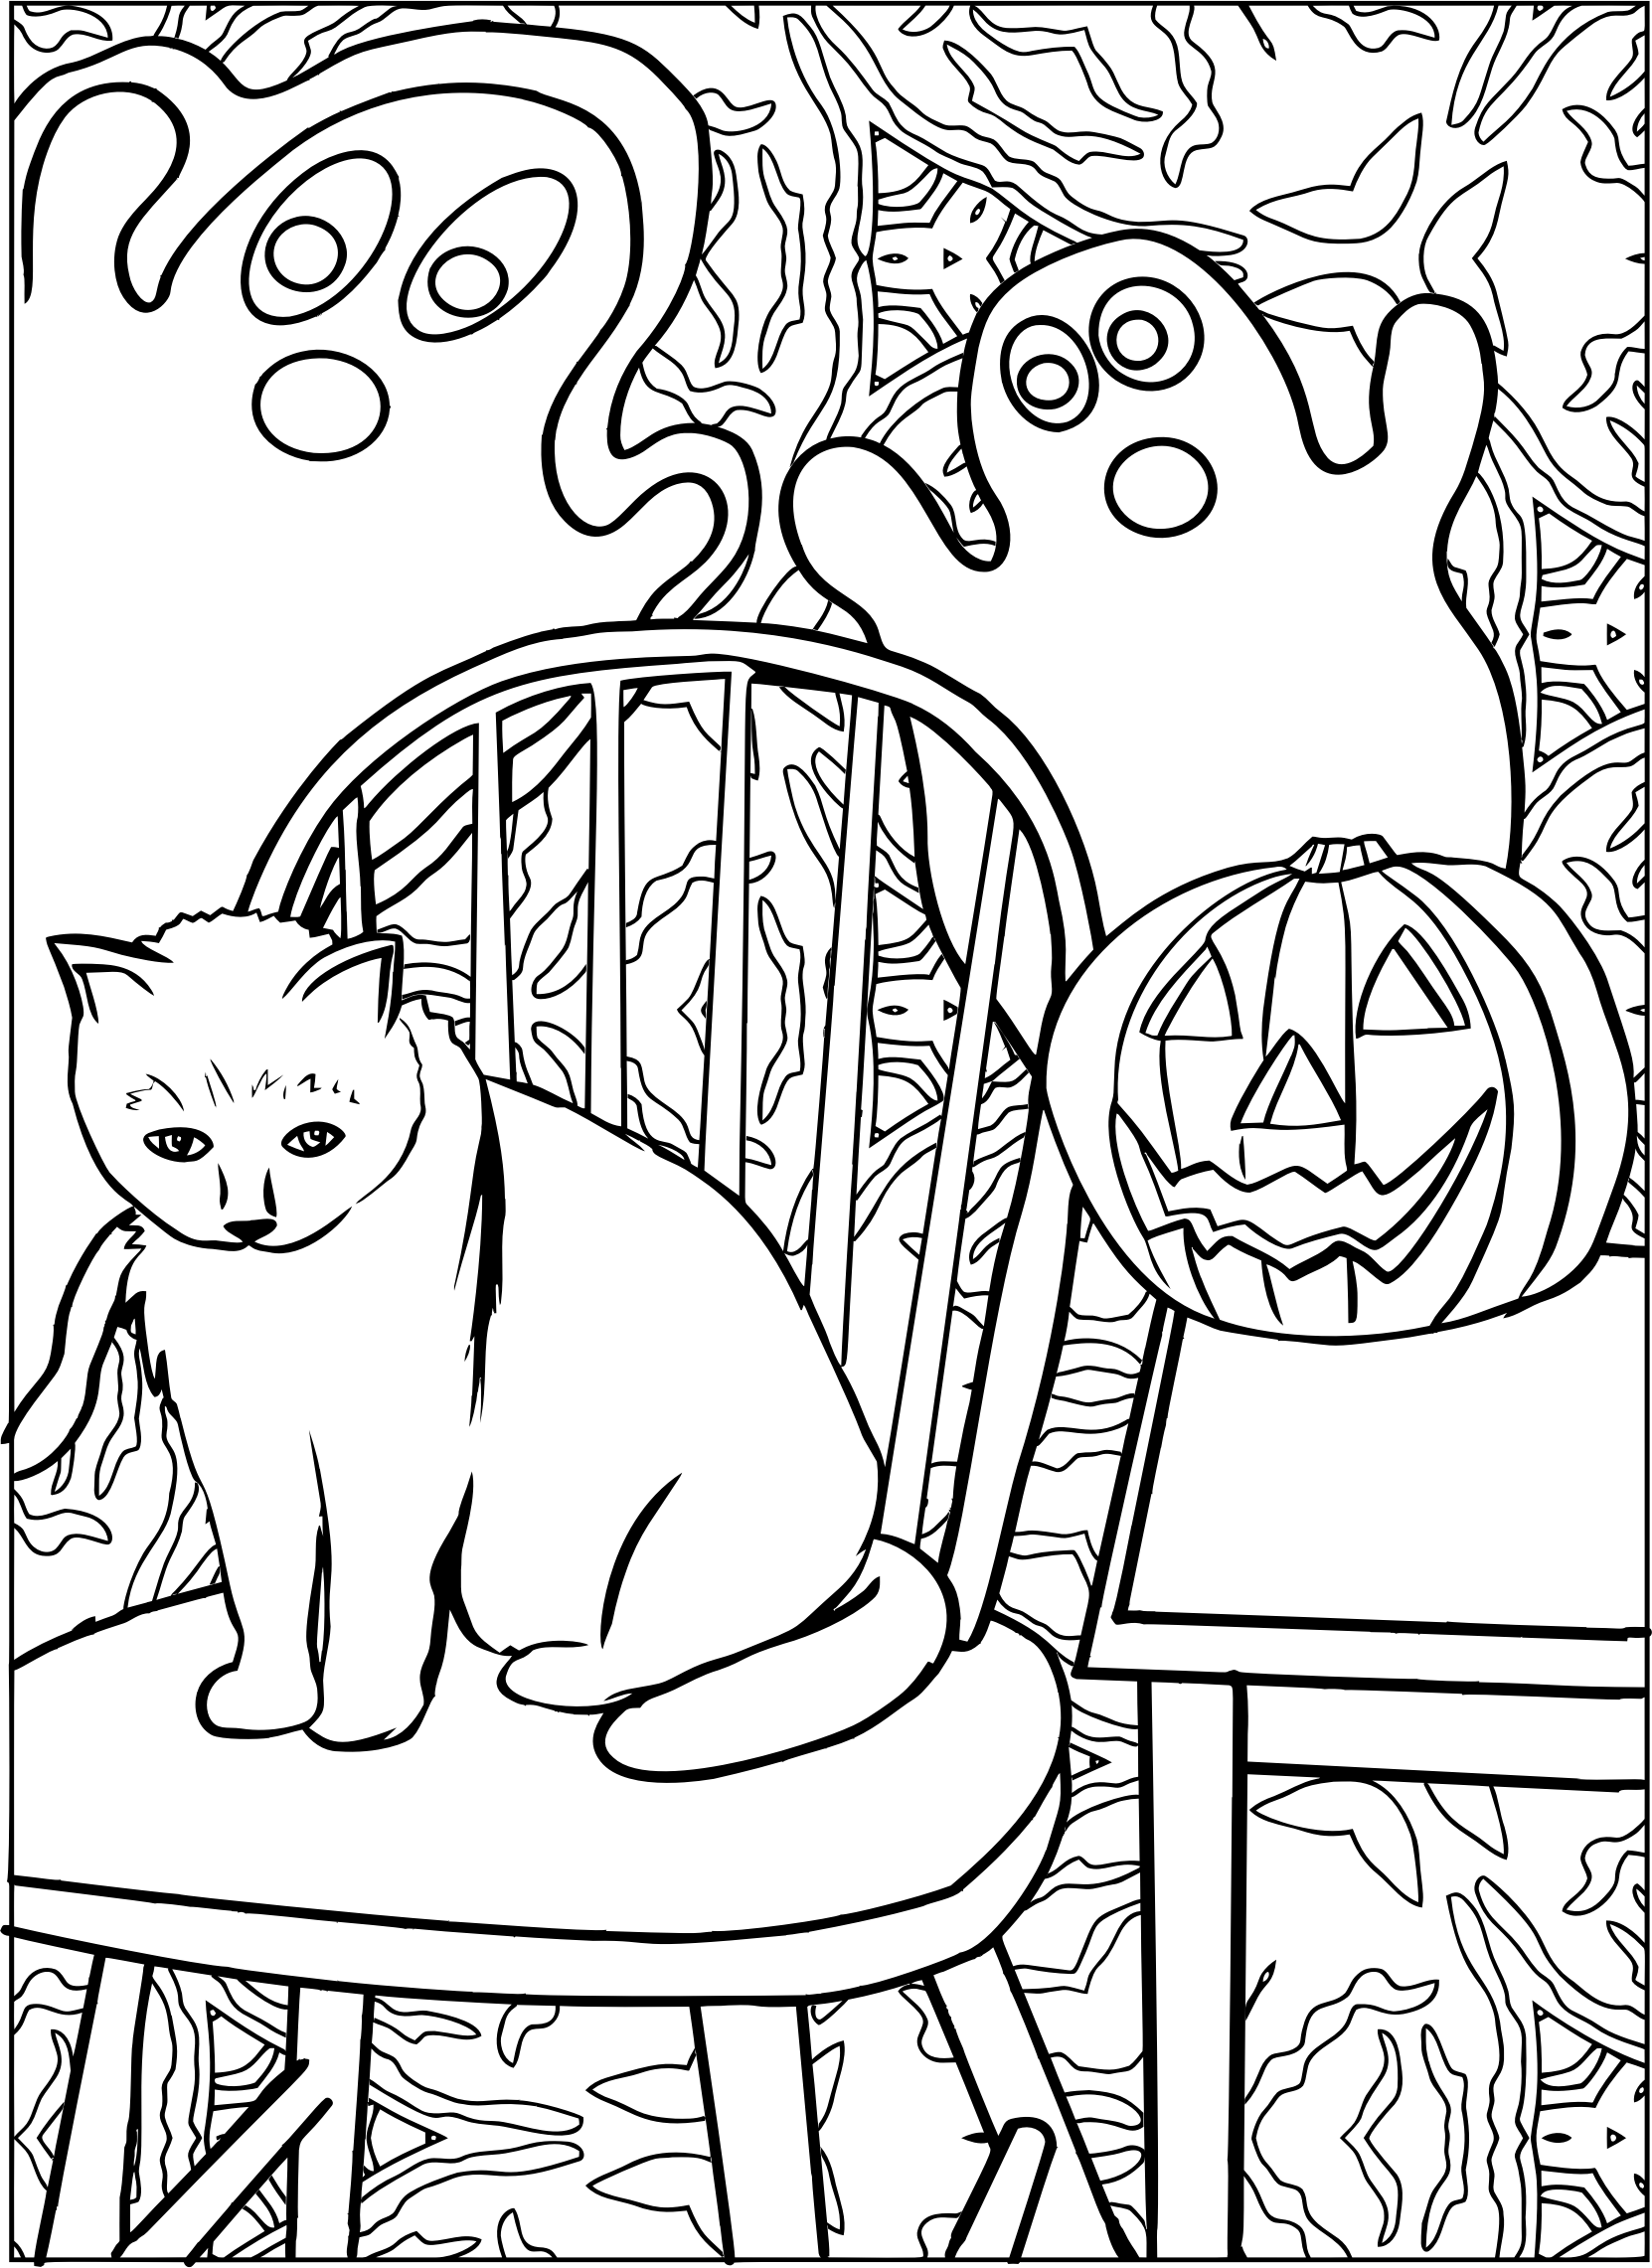 Halloween Cat Line Art With Ghost And Jack O Lanterns Vector Clipart Image